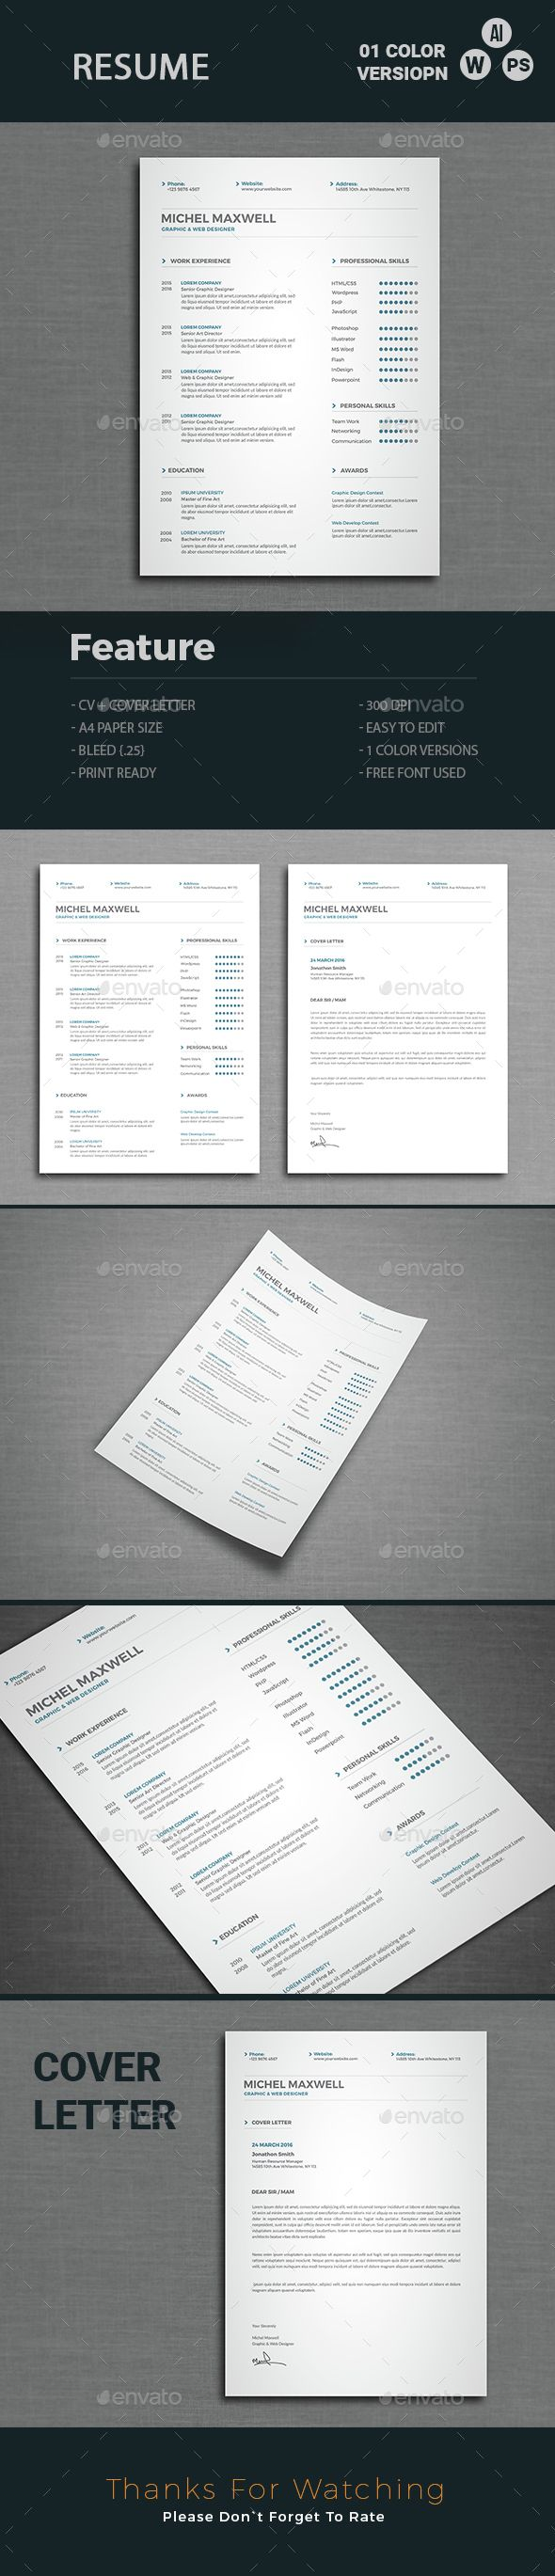 how to make cover letter of resume%0A powerbuilder resume samples This